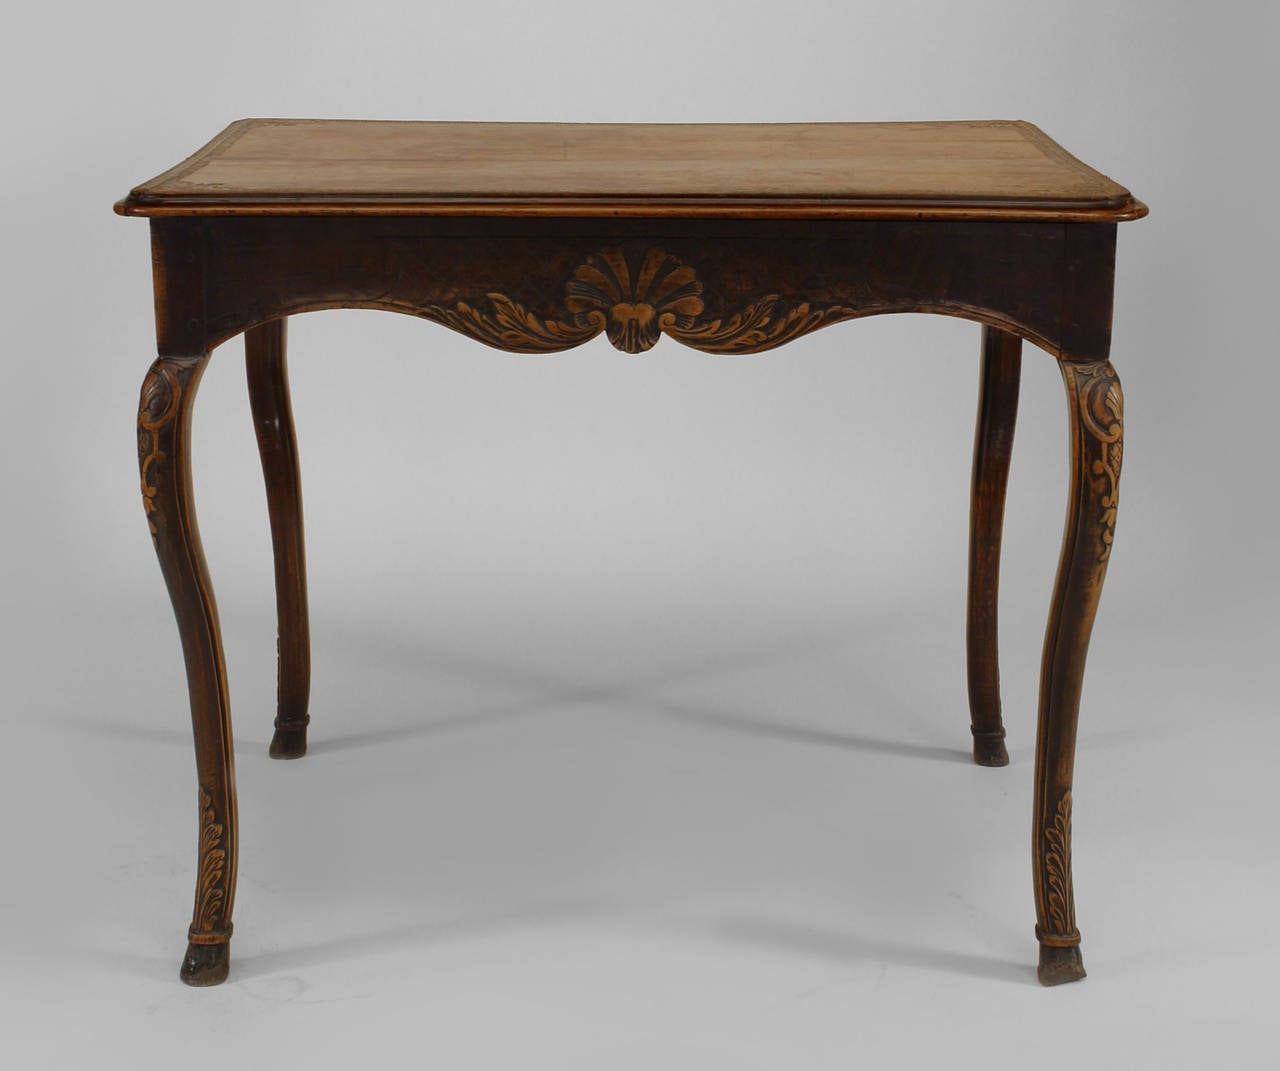 18th century french provincial floral carved end table for sale at 1stdibs. Black Bedroom Furniture Sets. Home Design Ideas